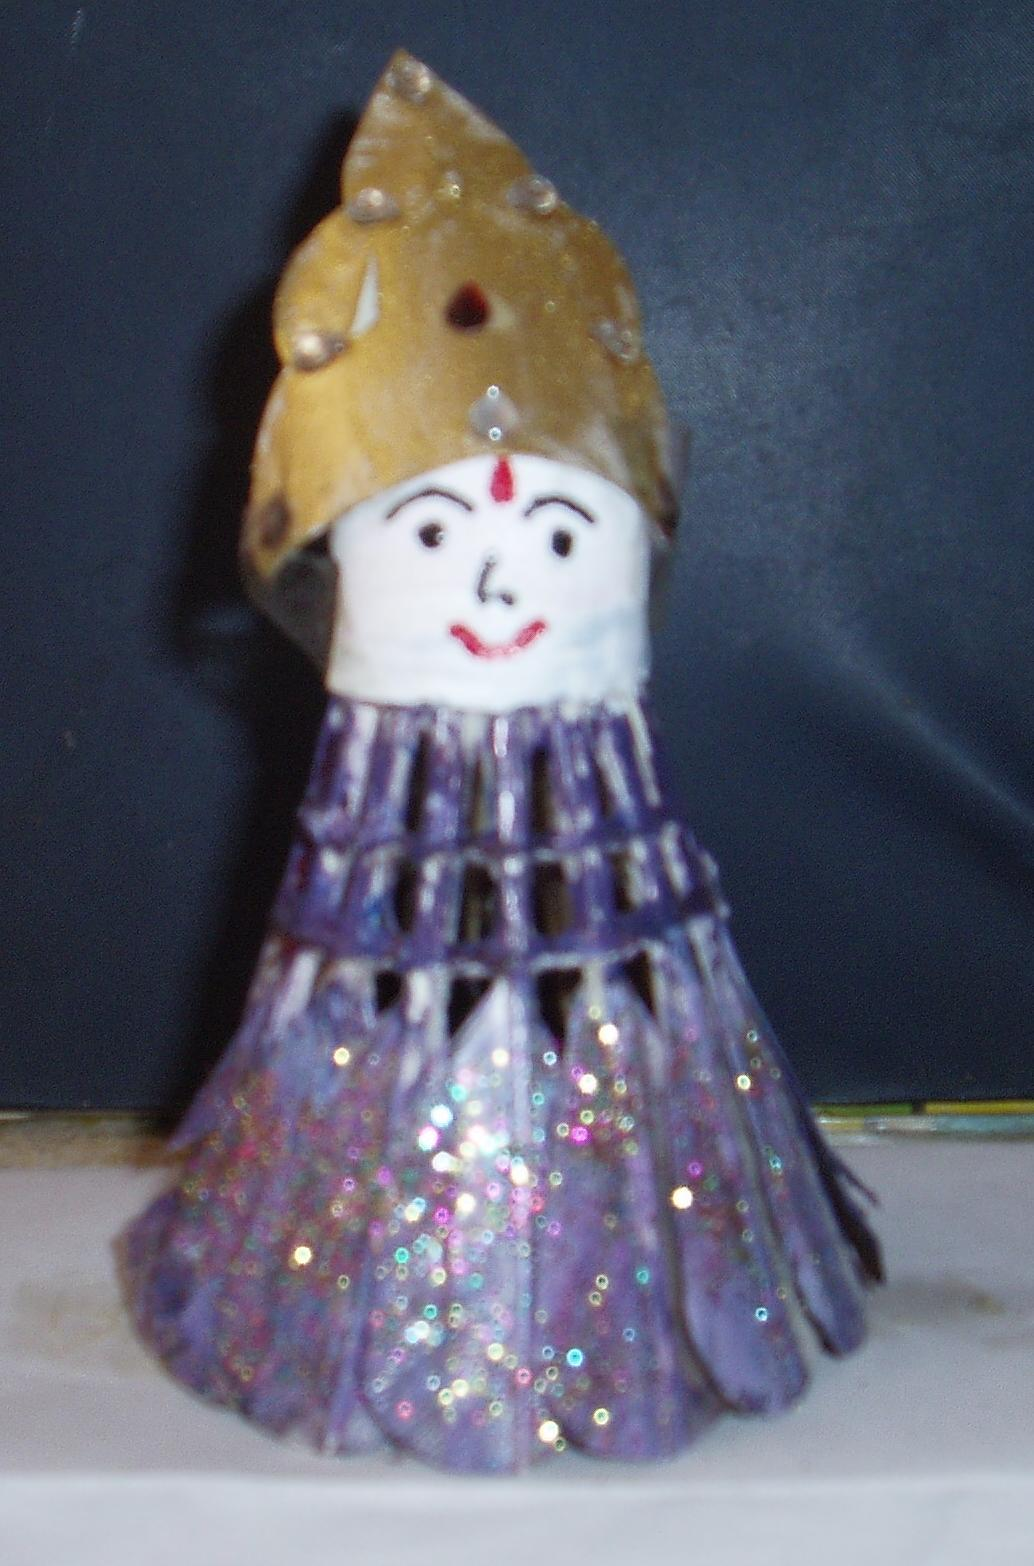 Easy crafts explore your creativity shuttle cock doll for Making hut with waste material